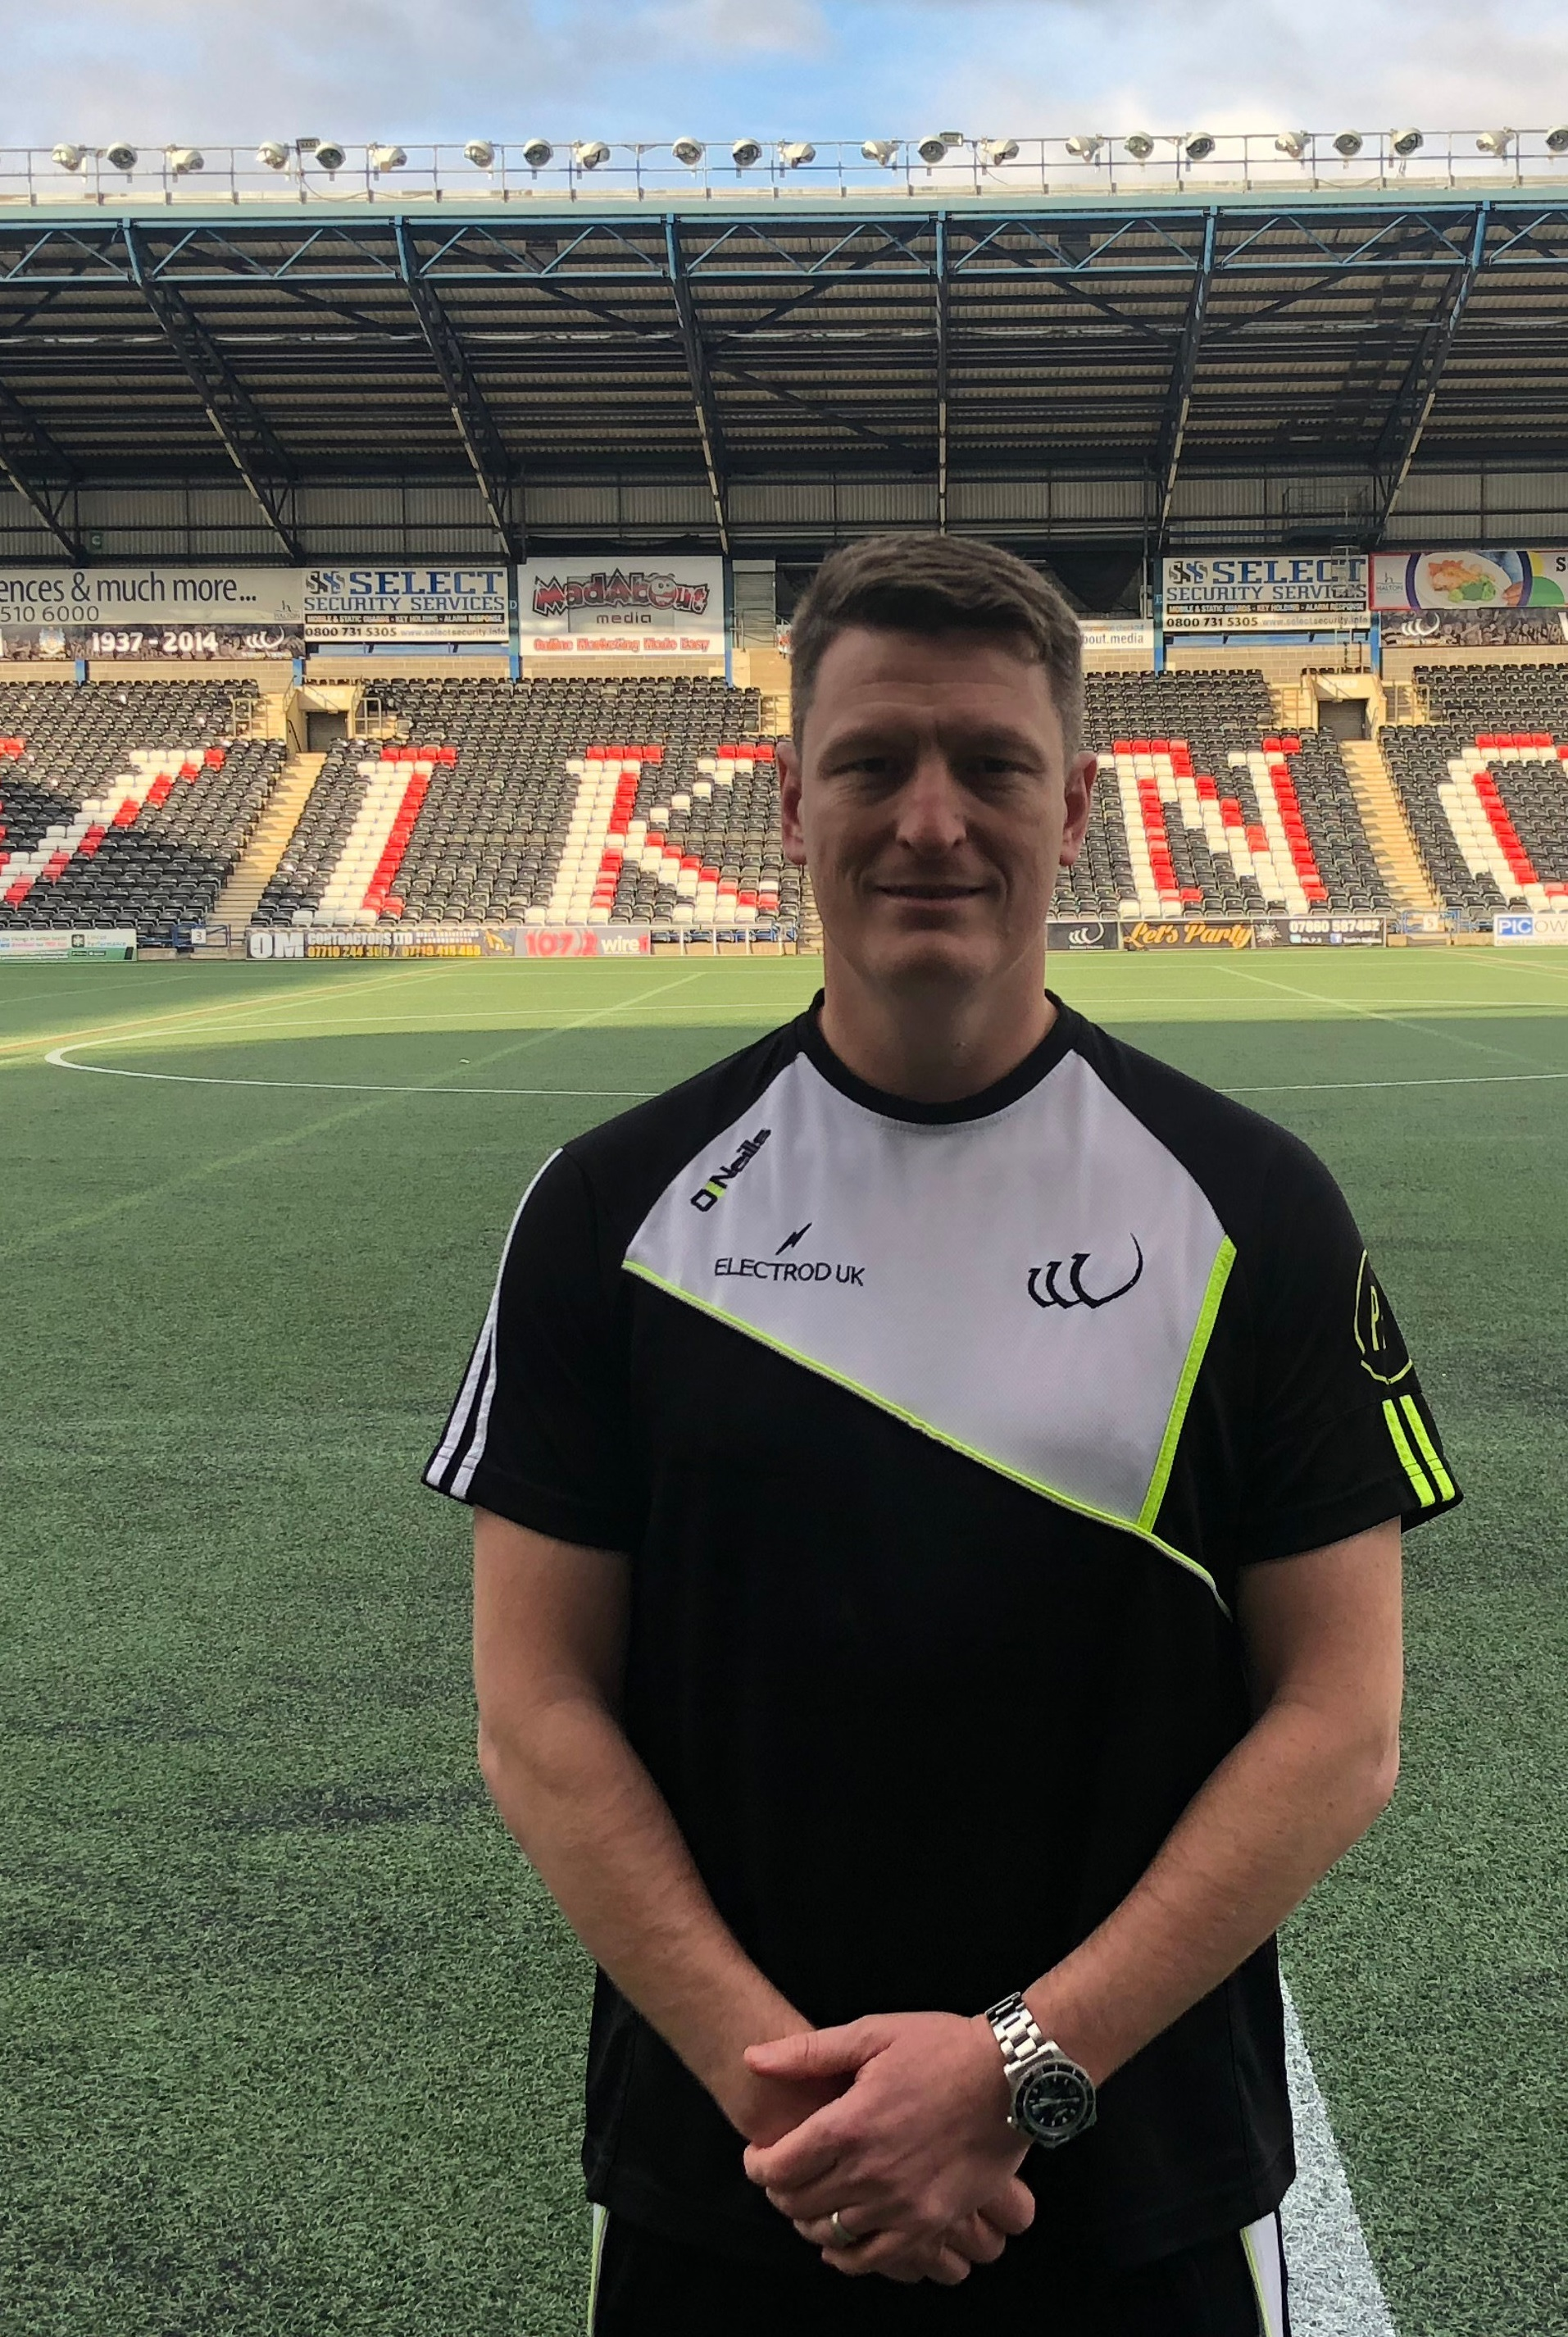 Phil Finney - new role at Widnes Vikings